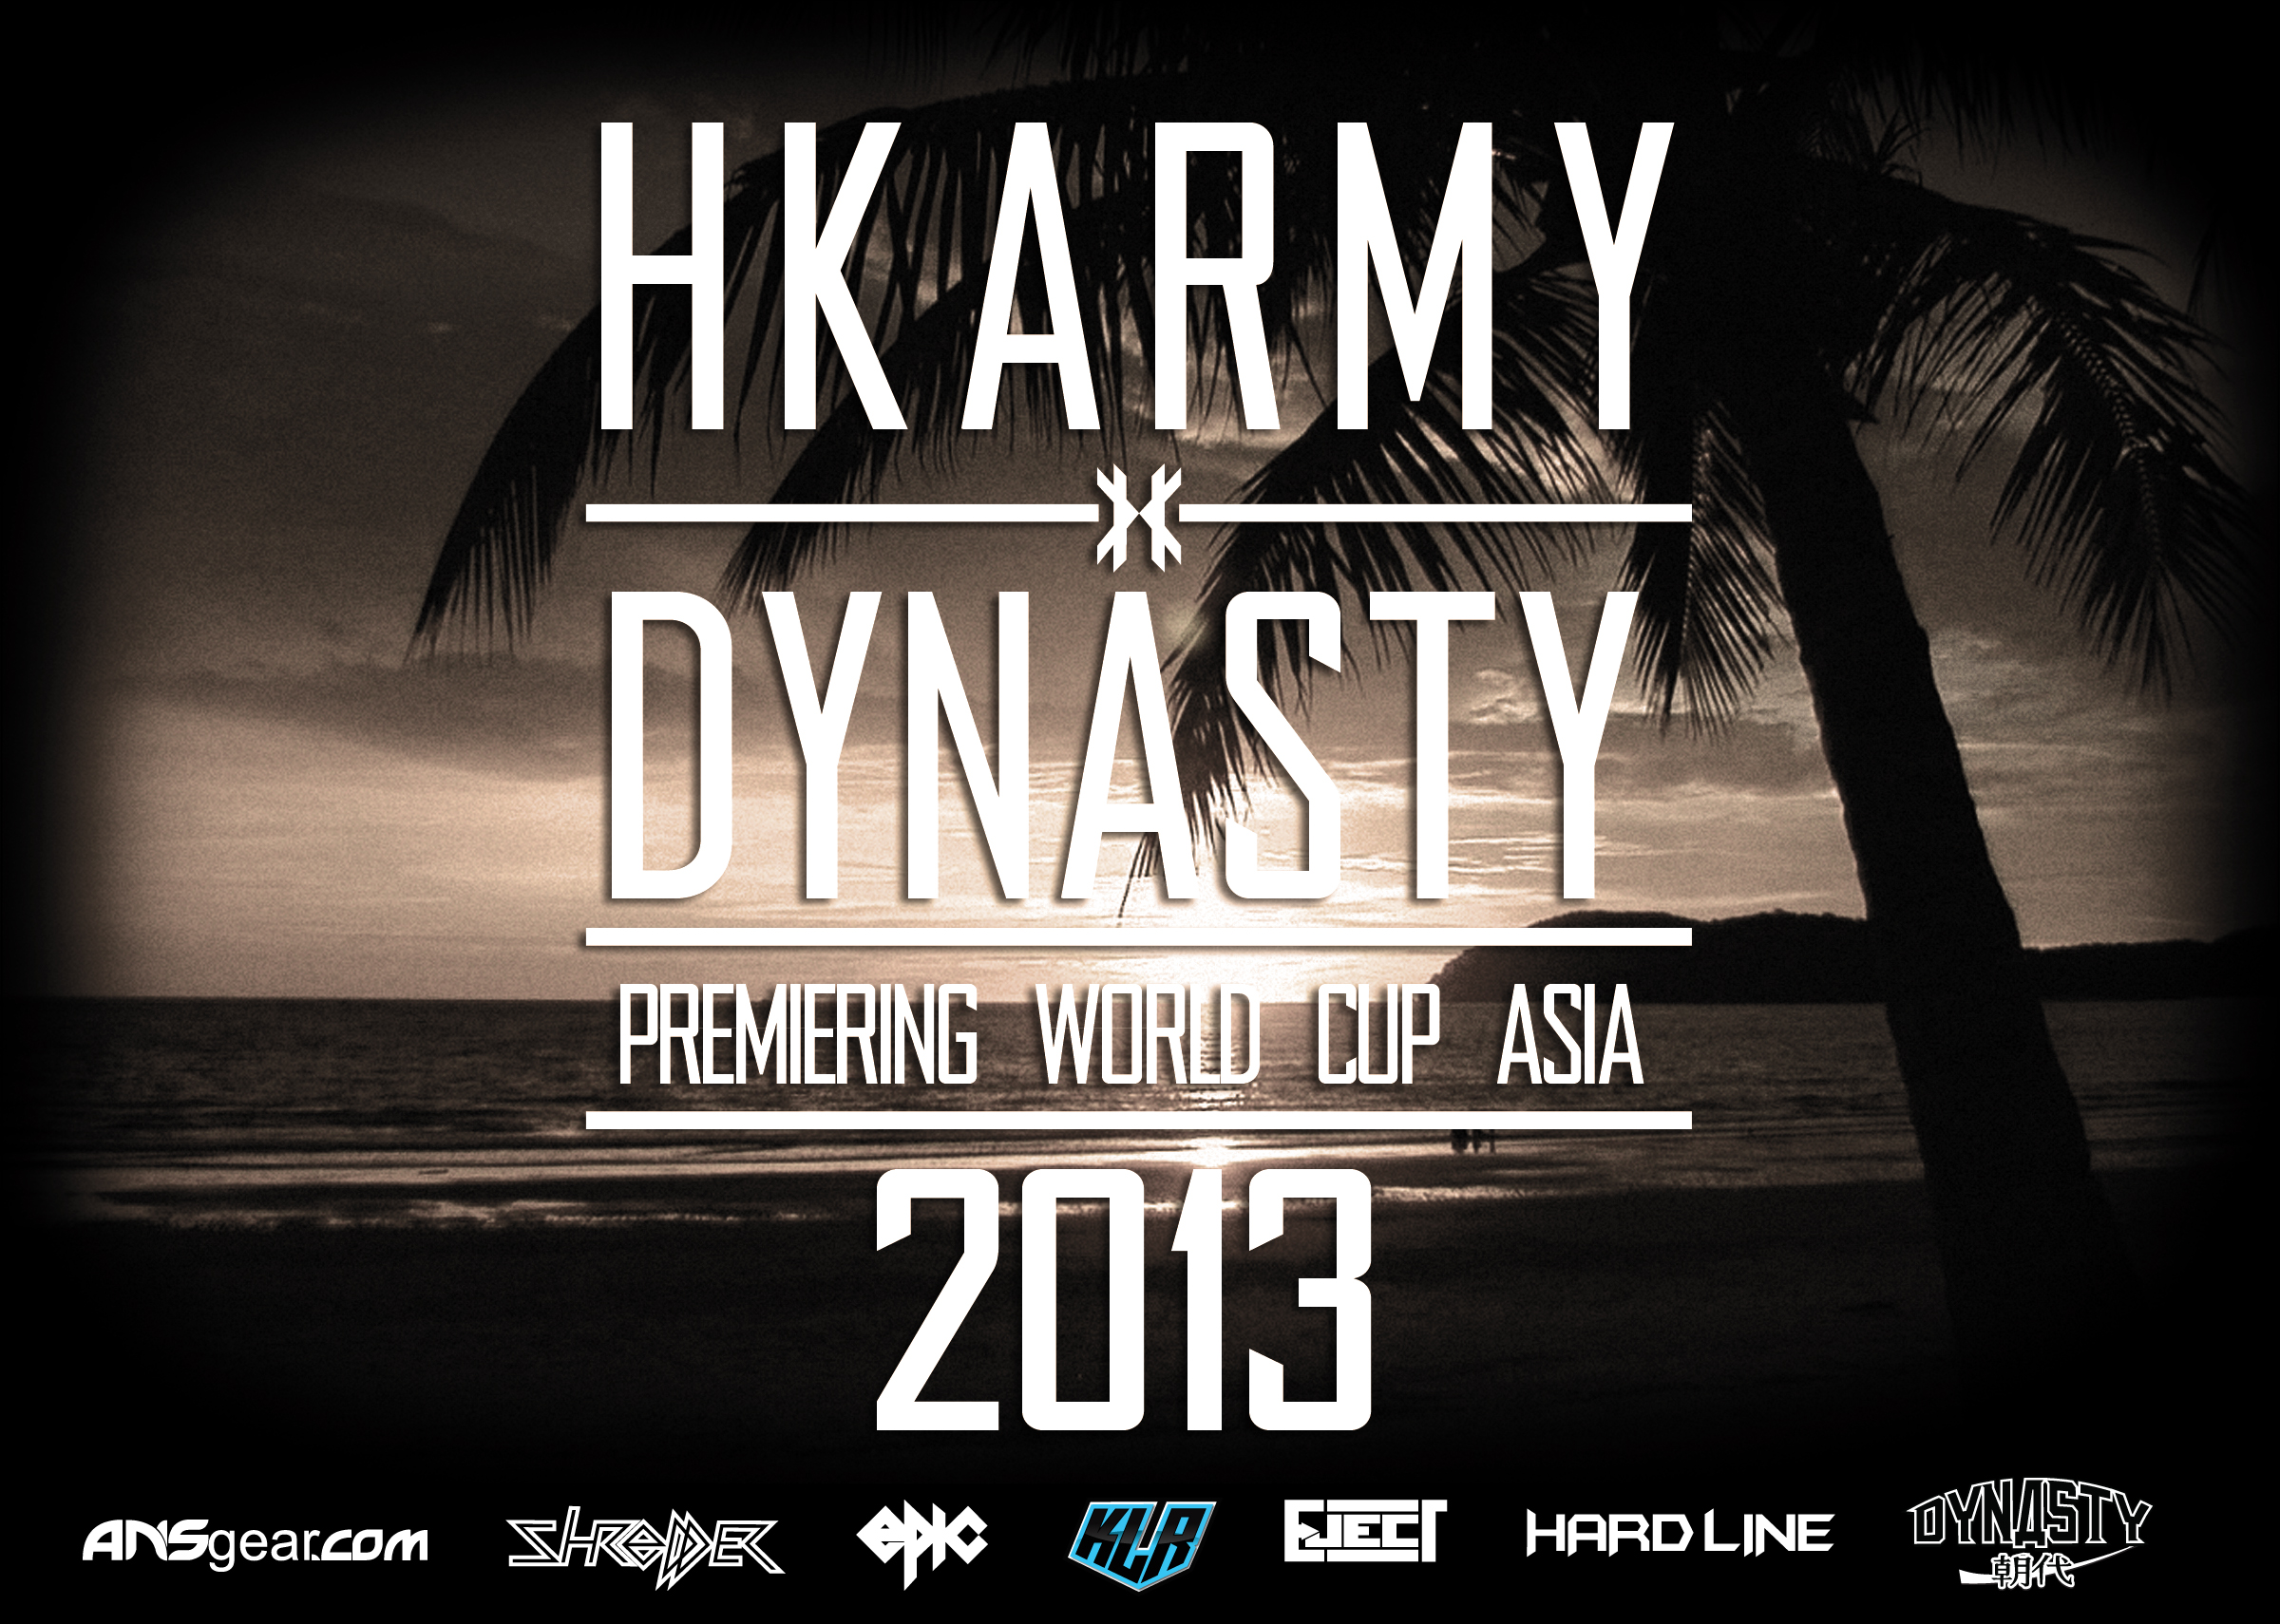 Breaking News: Dynasty Signs with HK Army